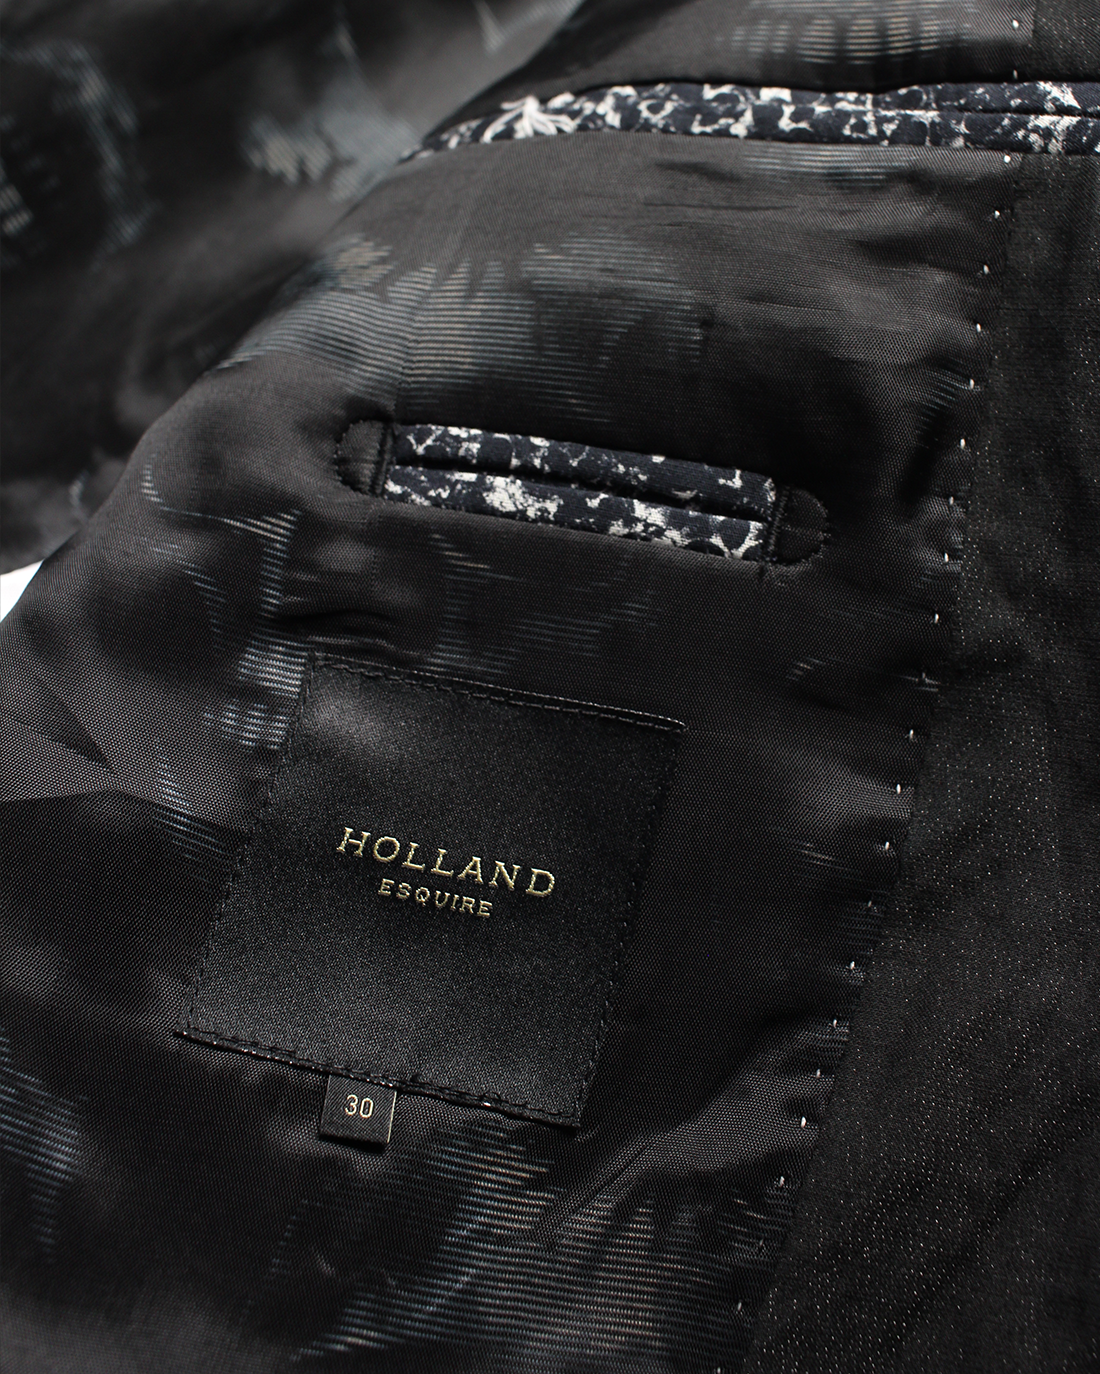 The Skulls Jacket - Holland Esquire